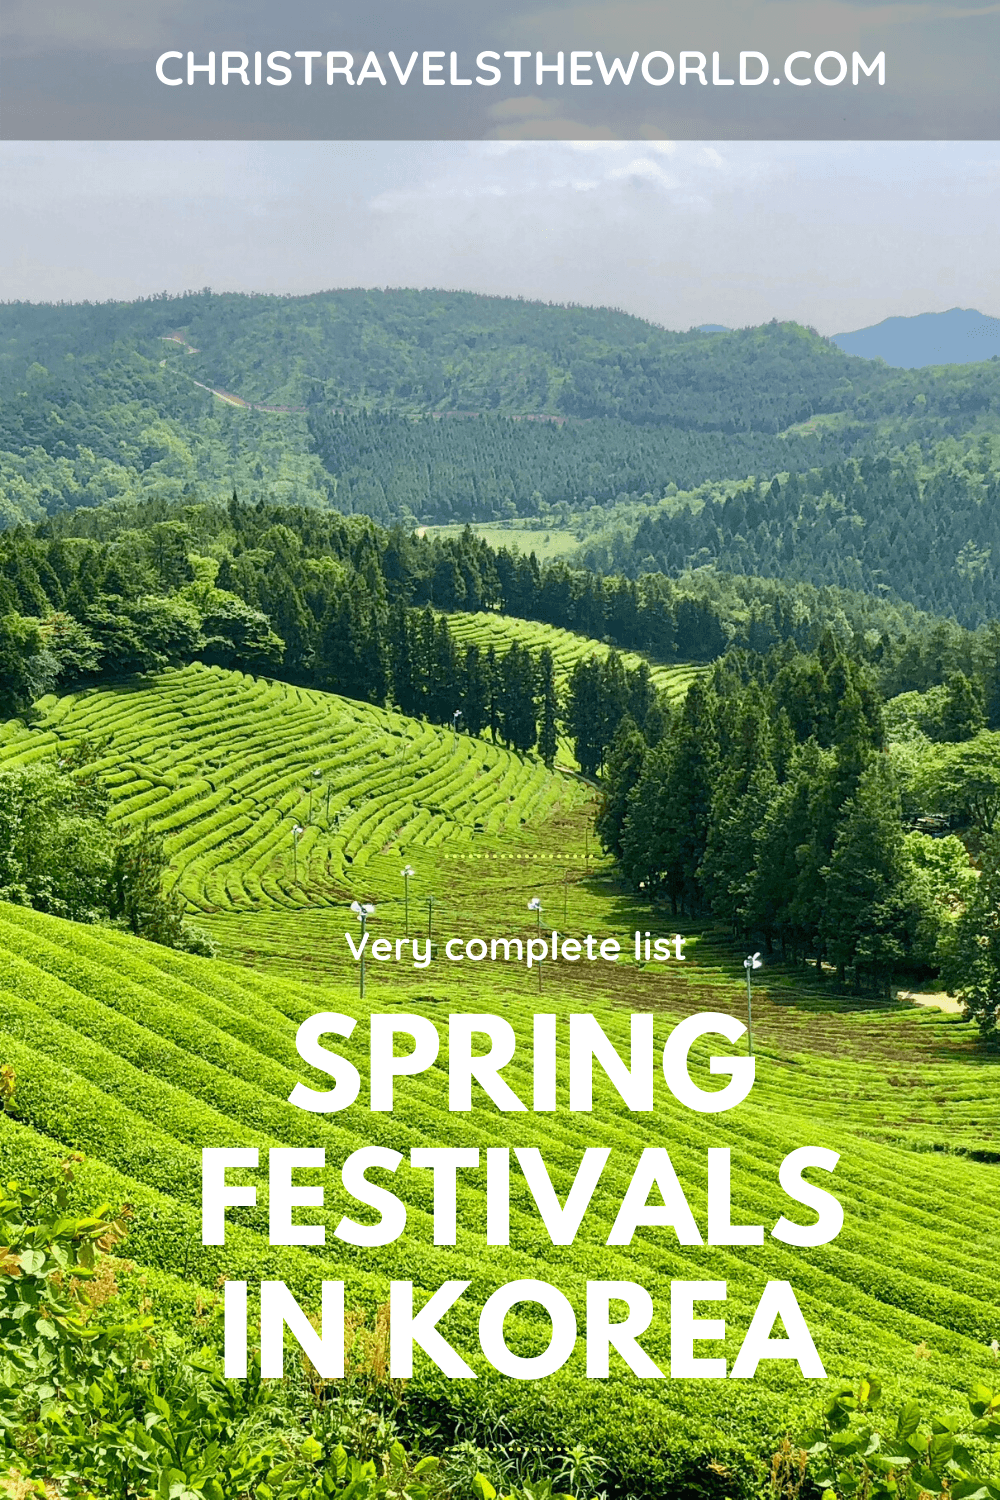 One of best things about South Korea - festivals! Spring abounds with various festivals, in Seoul and all over Korea. A very complete guide to spring festivals in #southkorea #festivals #spring #koreatravel